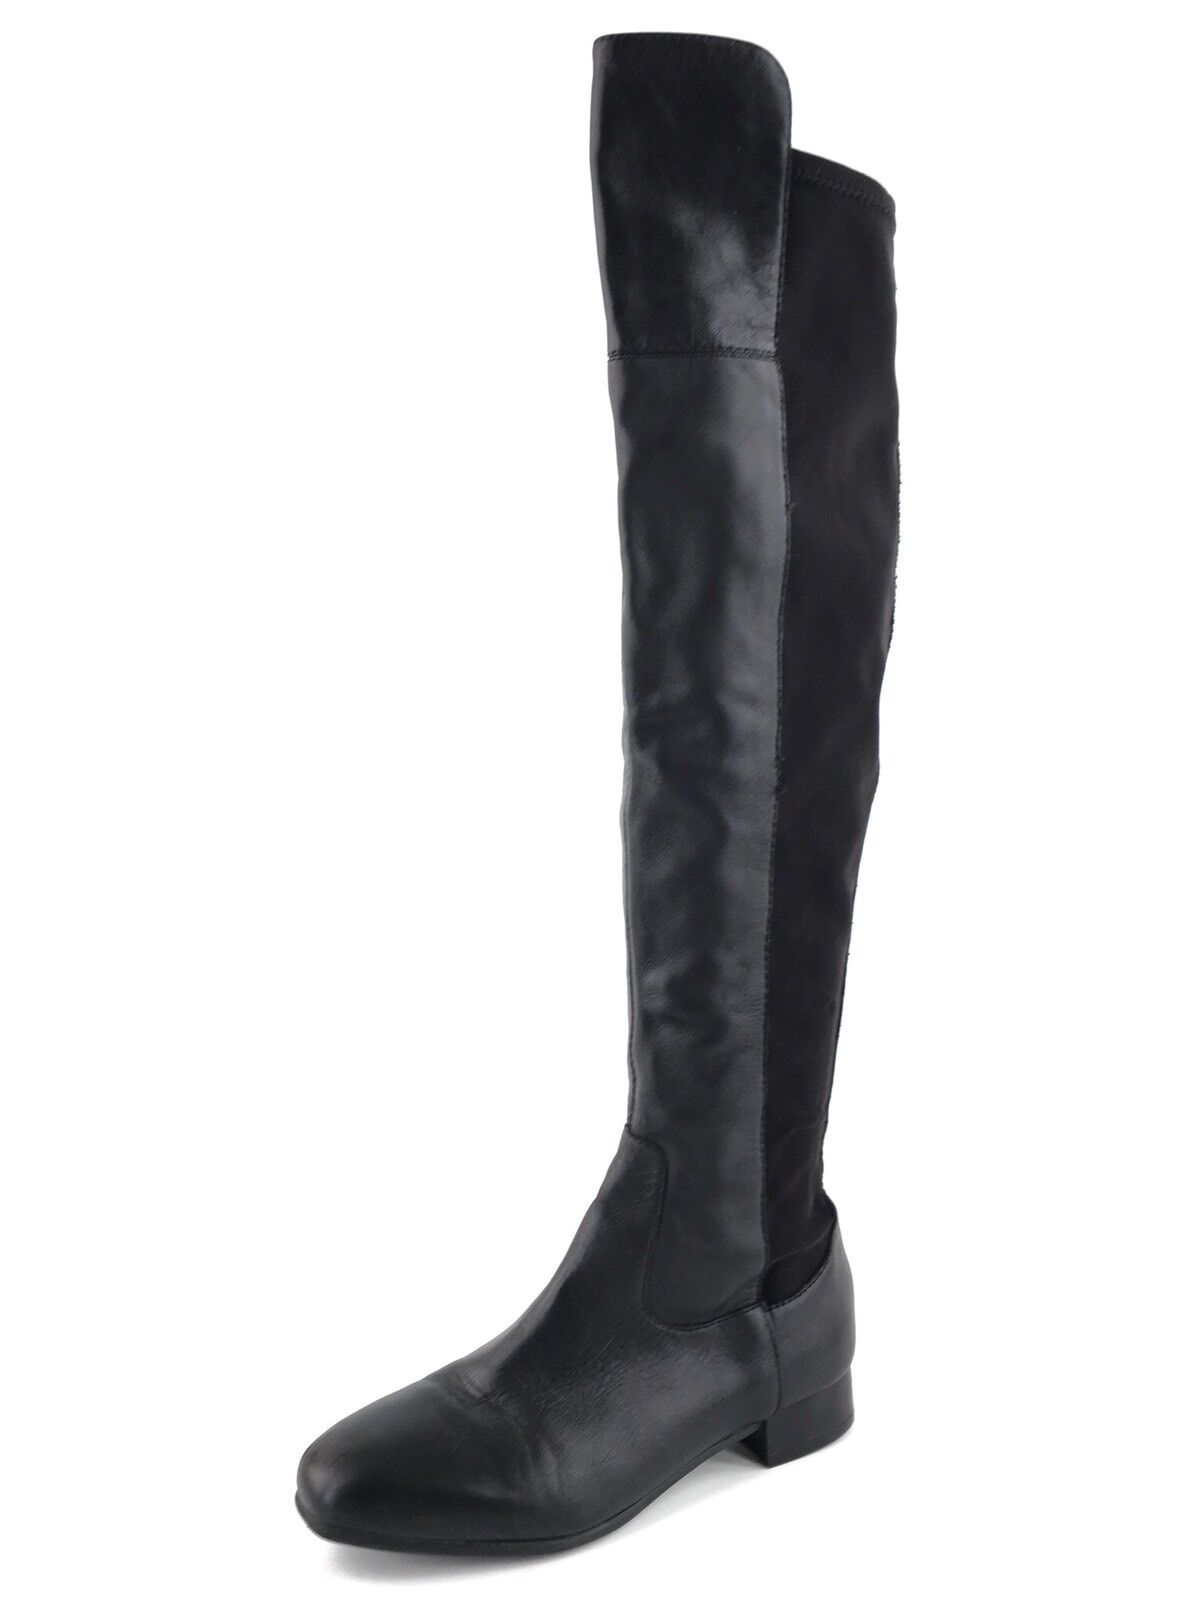 Louise Et Cie Andora Black Leather Over The Knee Stretch Boots Womens Size 5 M *